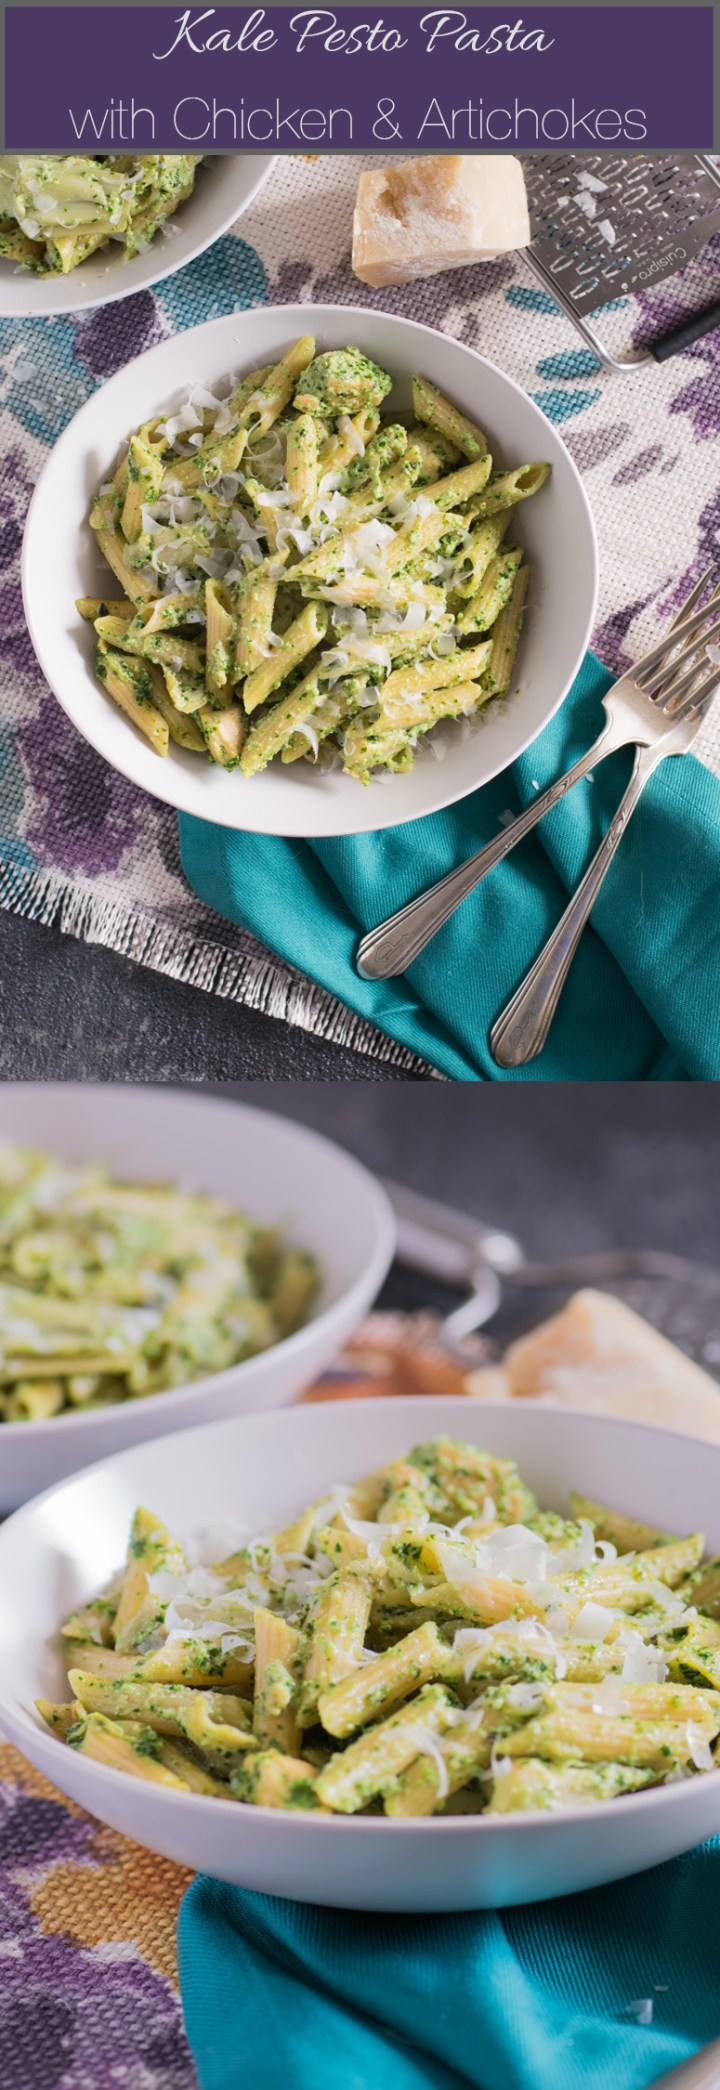 Kale Pesto Pasta with Chicken & Artichokes